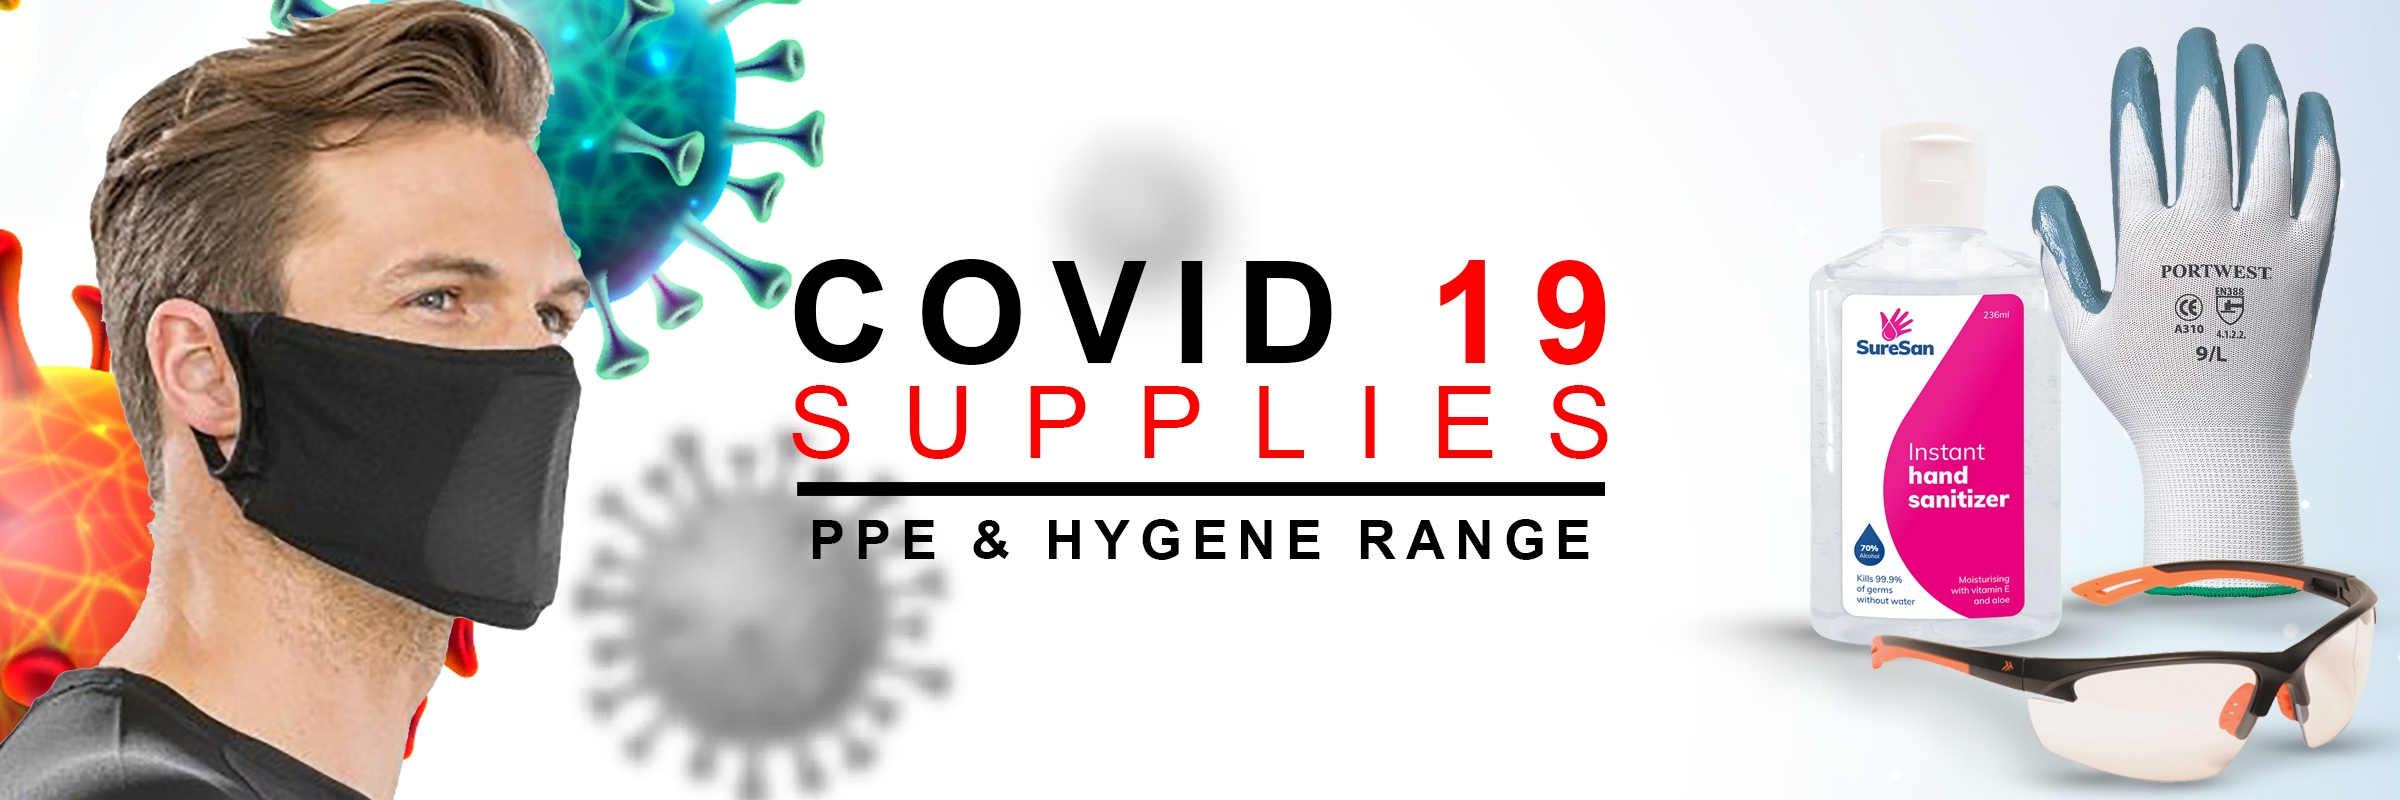 PPE & COVID 19 Equipment & Clothing